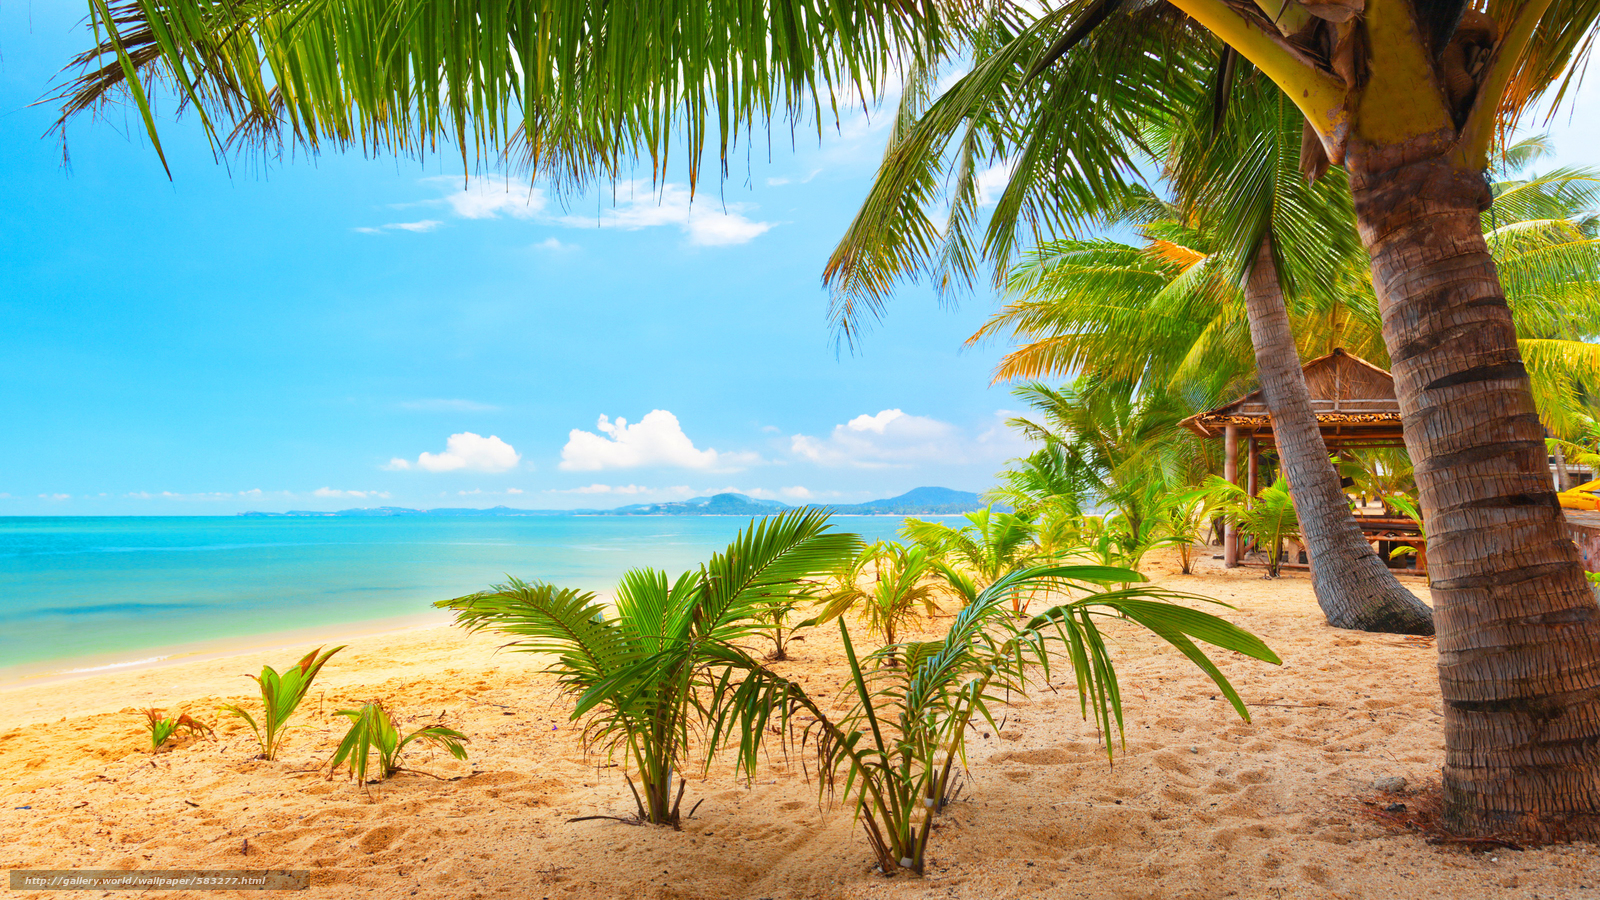 Sunrise beach wallpapers images with high definition wallpaper 1920x1200 px 20468 kb